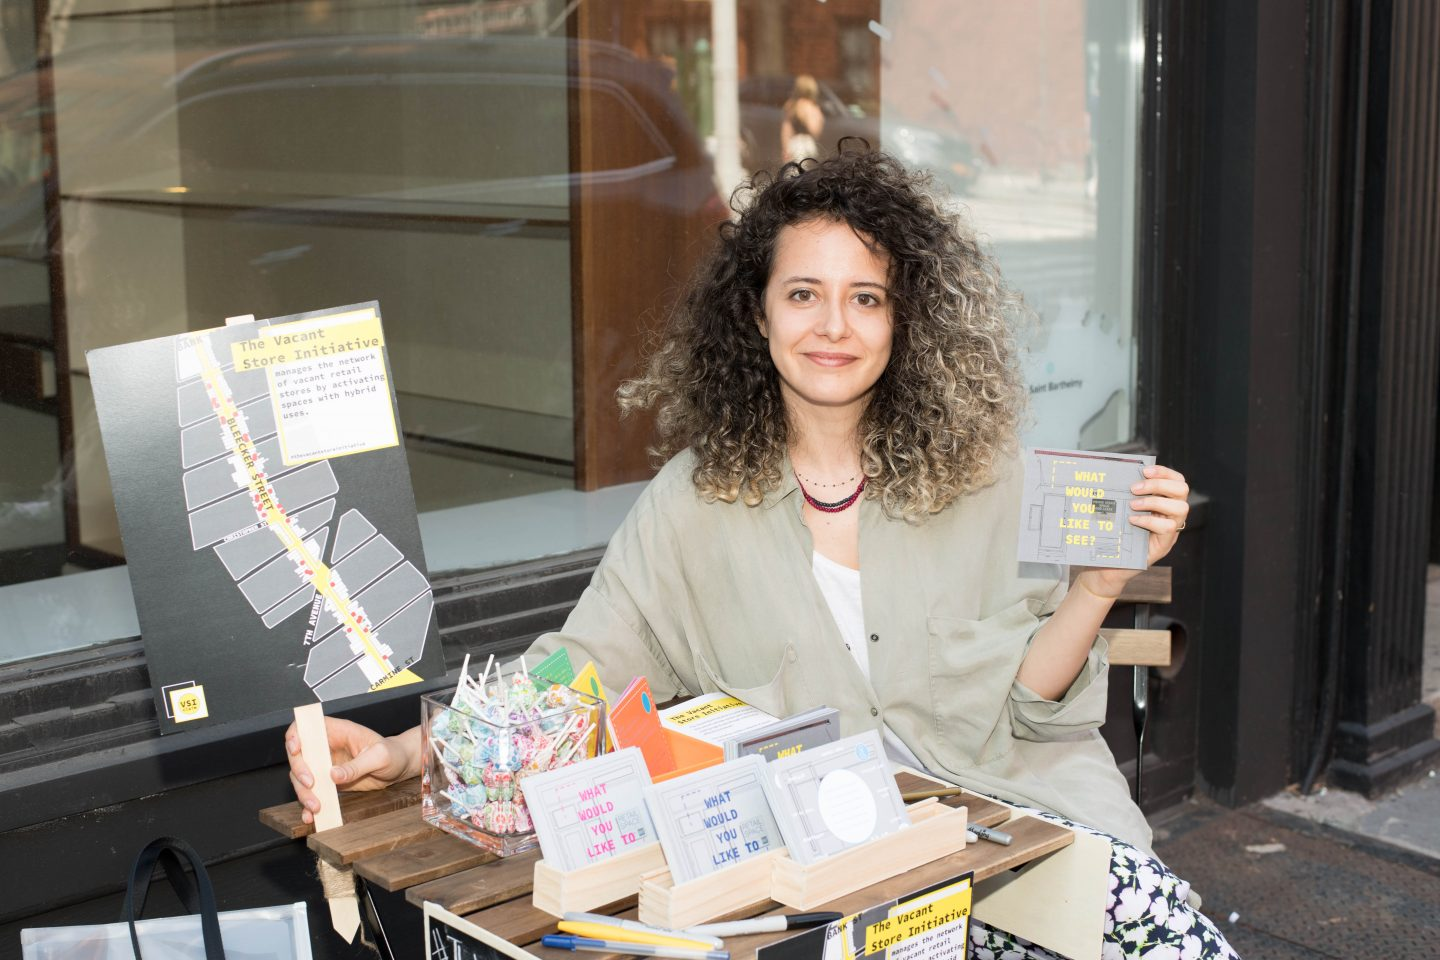 Irem Yildiz on Bleecker Street as part of her Vacant Store Initiative.  Photograph by Erica Freudenstein Photography.